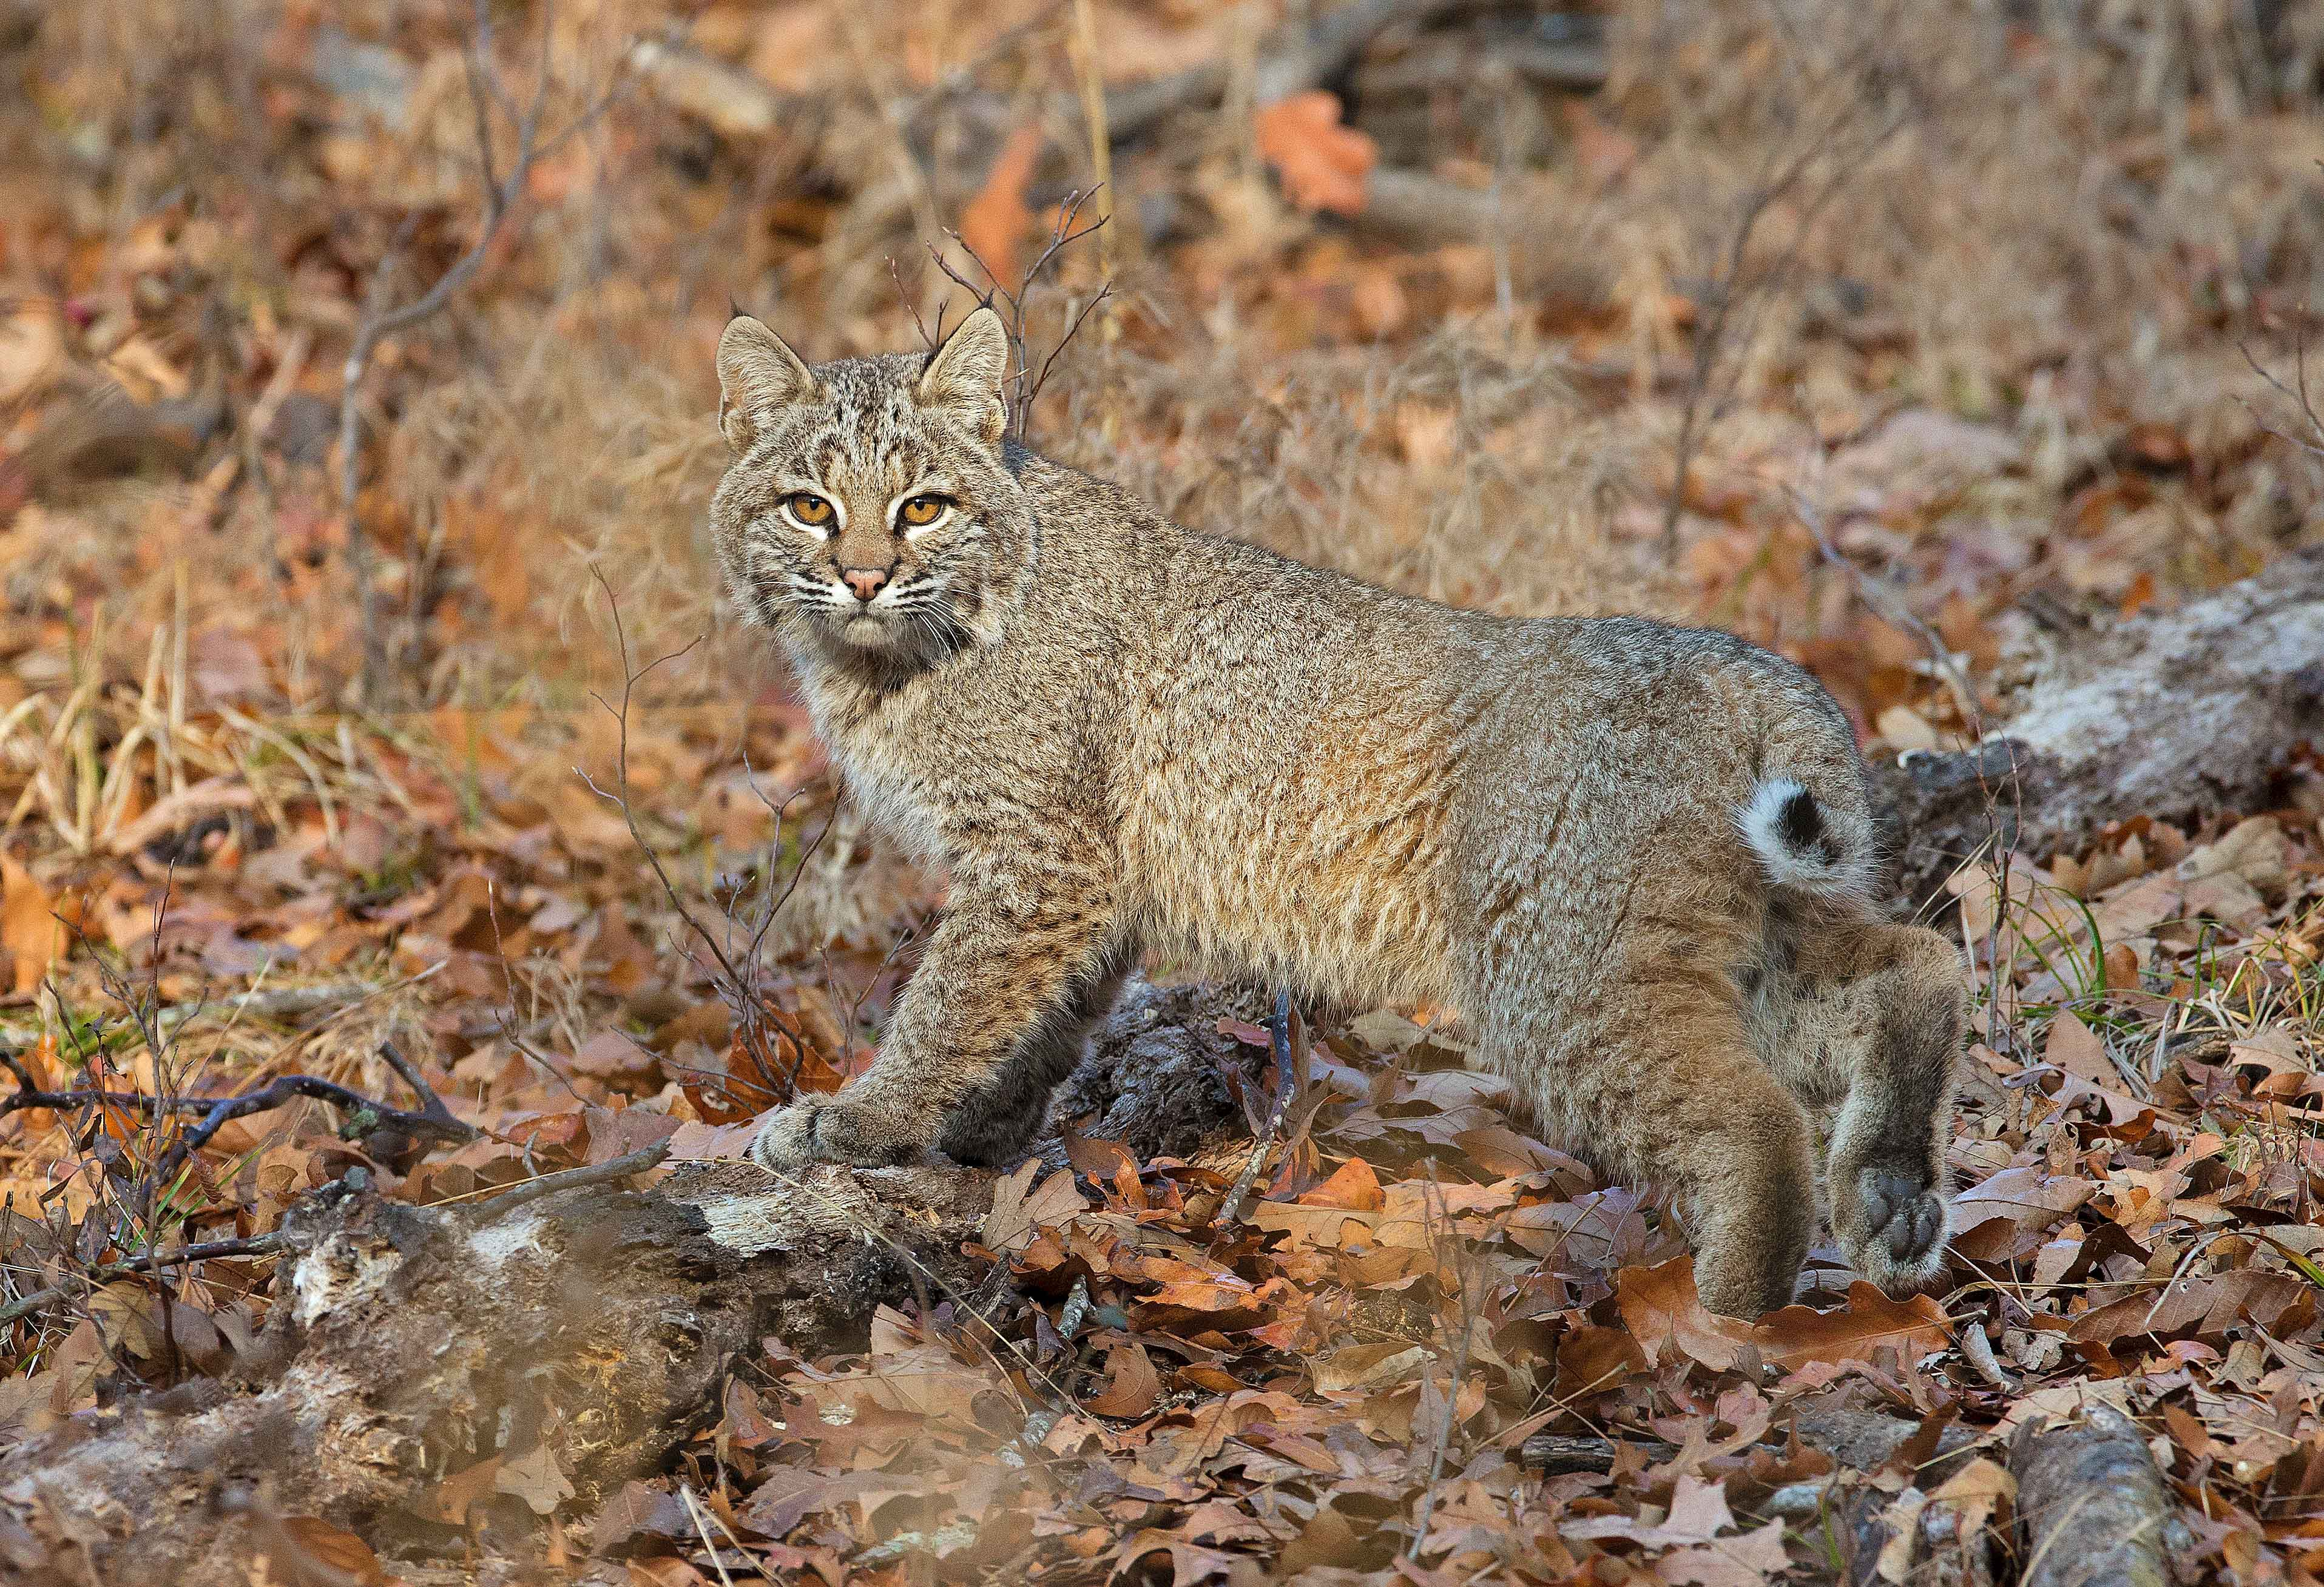 Bobcat spotted among the trees.